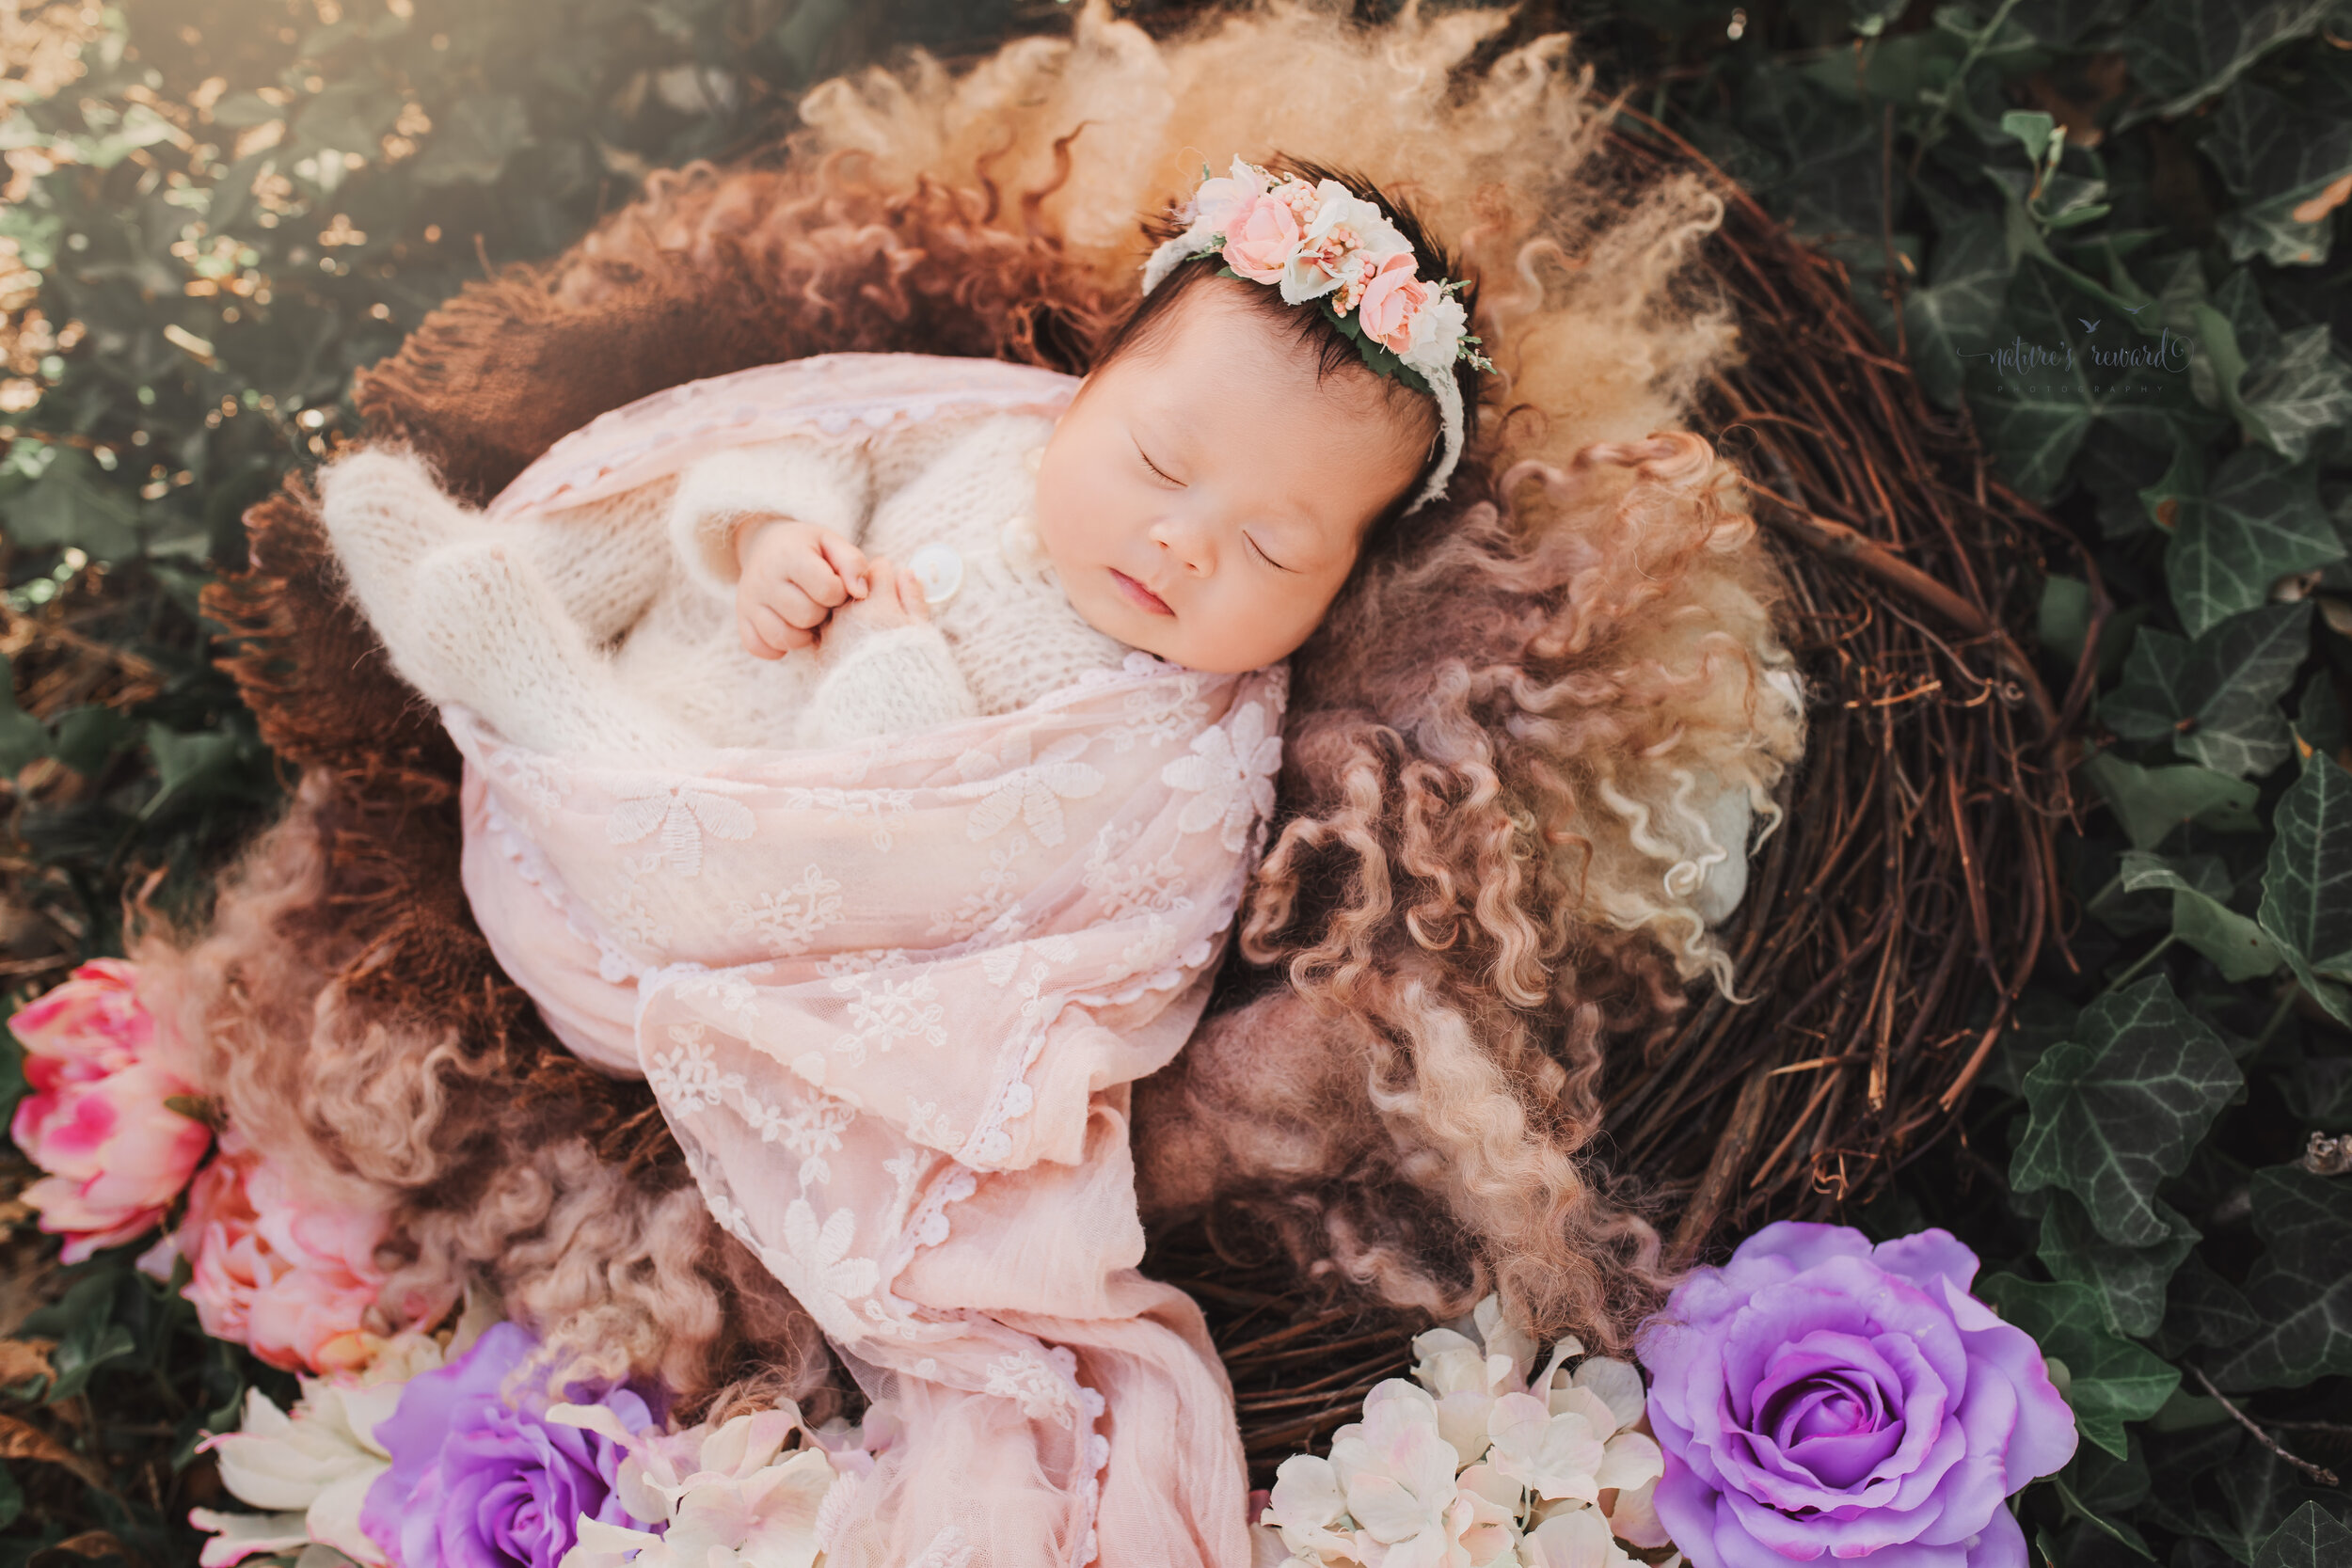 Newborn Baby girl in a pink swaddle in a nest in a garden portrait by nature's Reward Photography